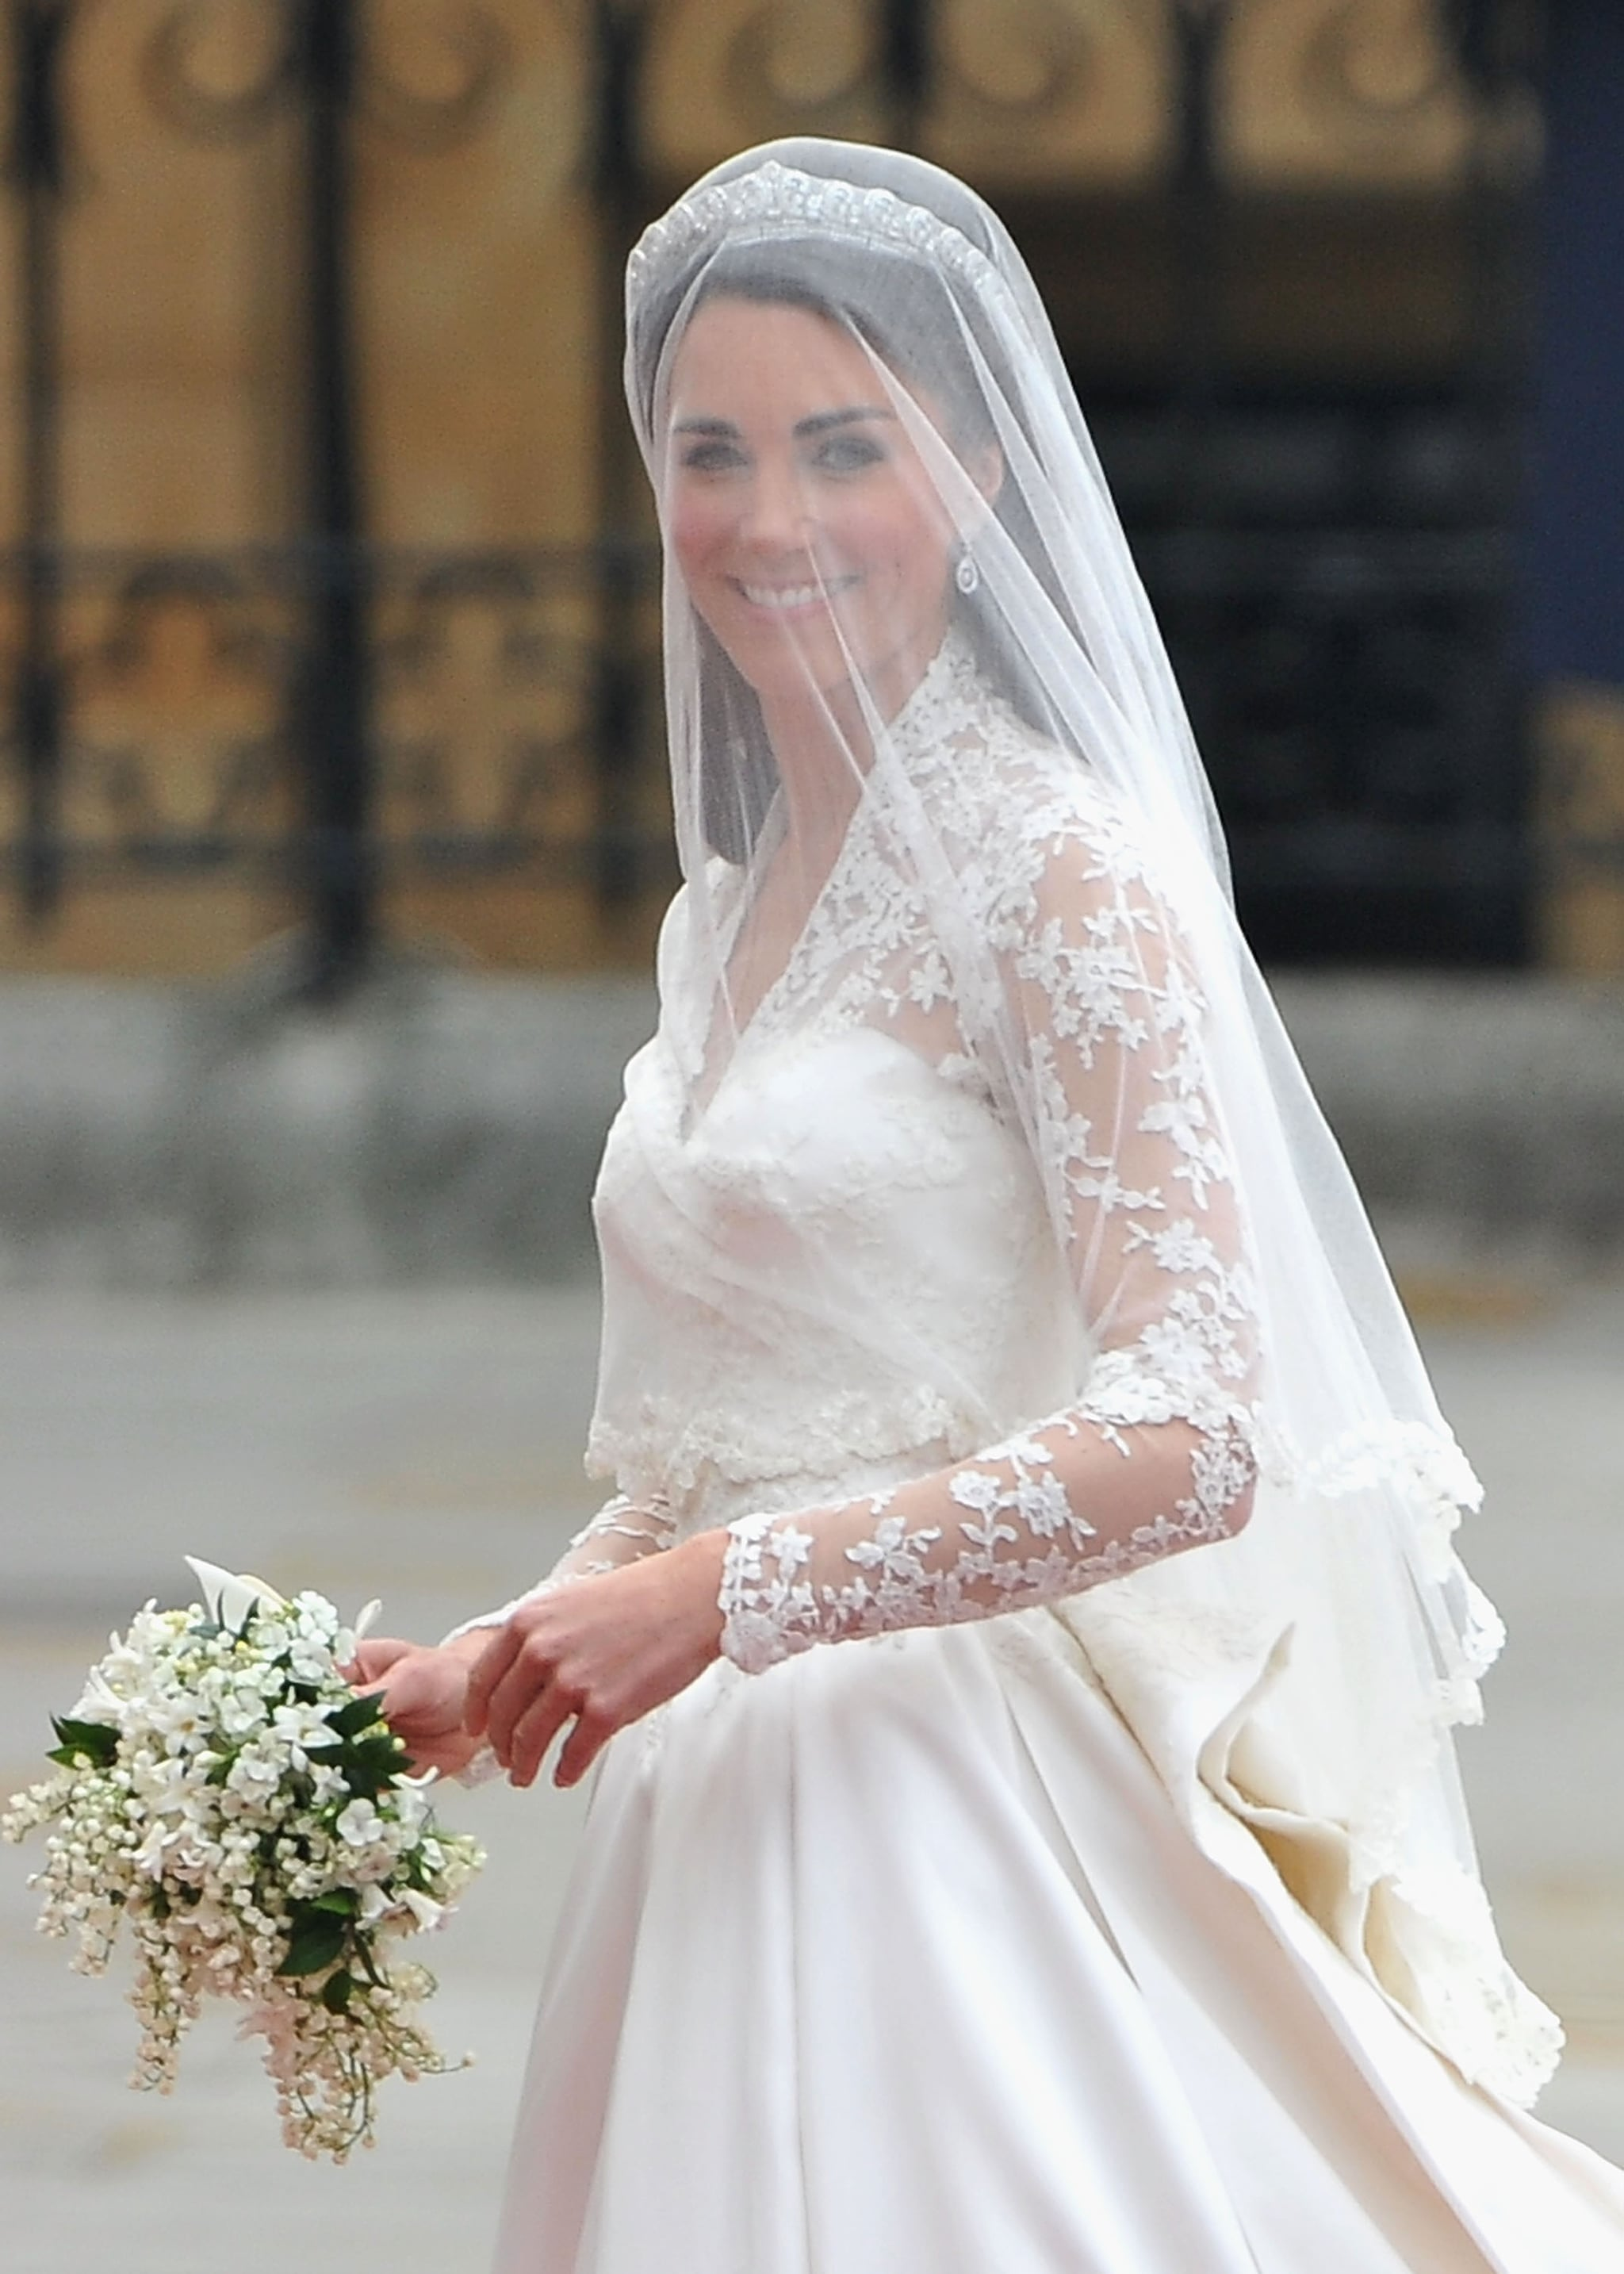 Wedding Flowers Kate Middleton Every Royal Bride Has A Sprig Of